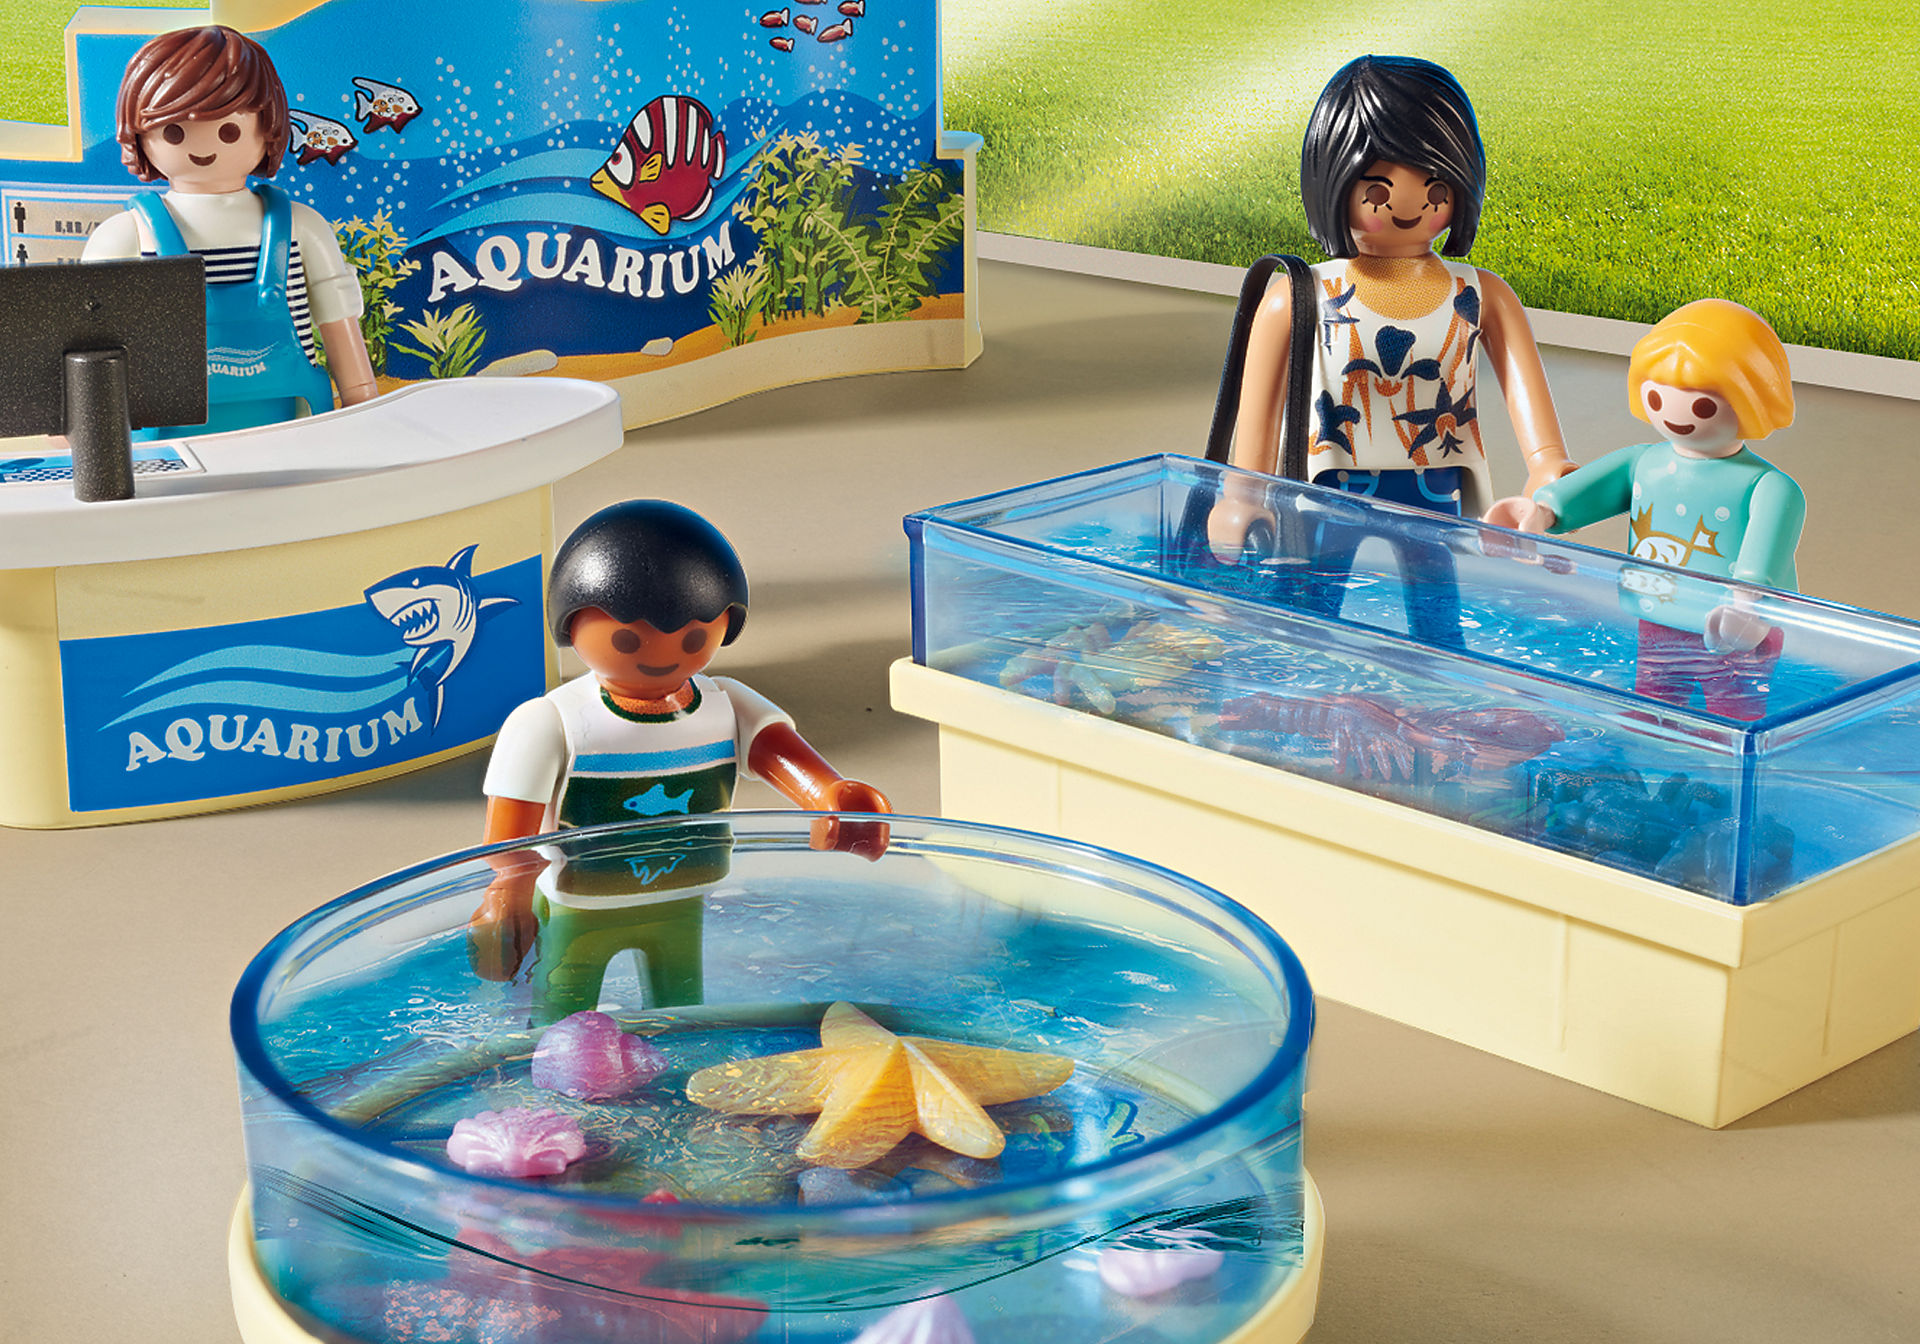 http://media.playmobil.com/i/playmobil/9061_product_extra2/Aquarium-Shop